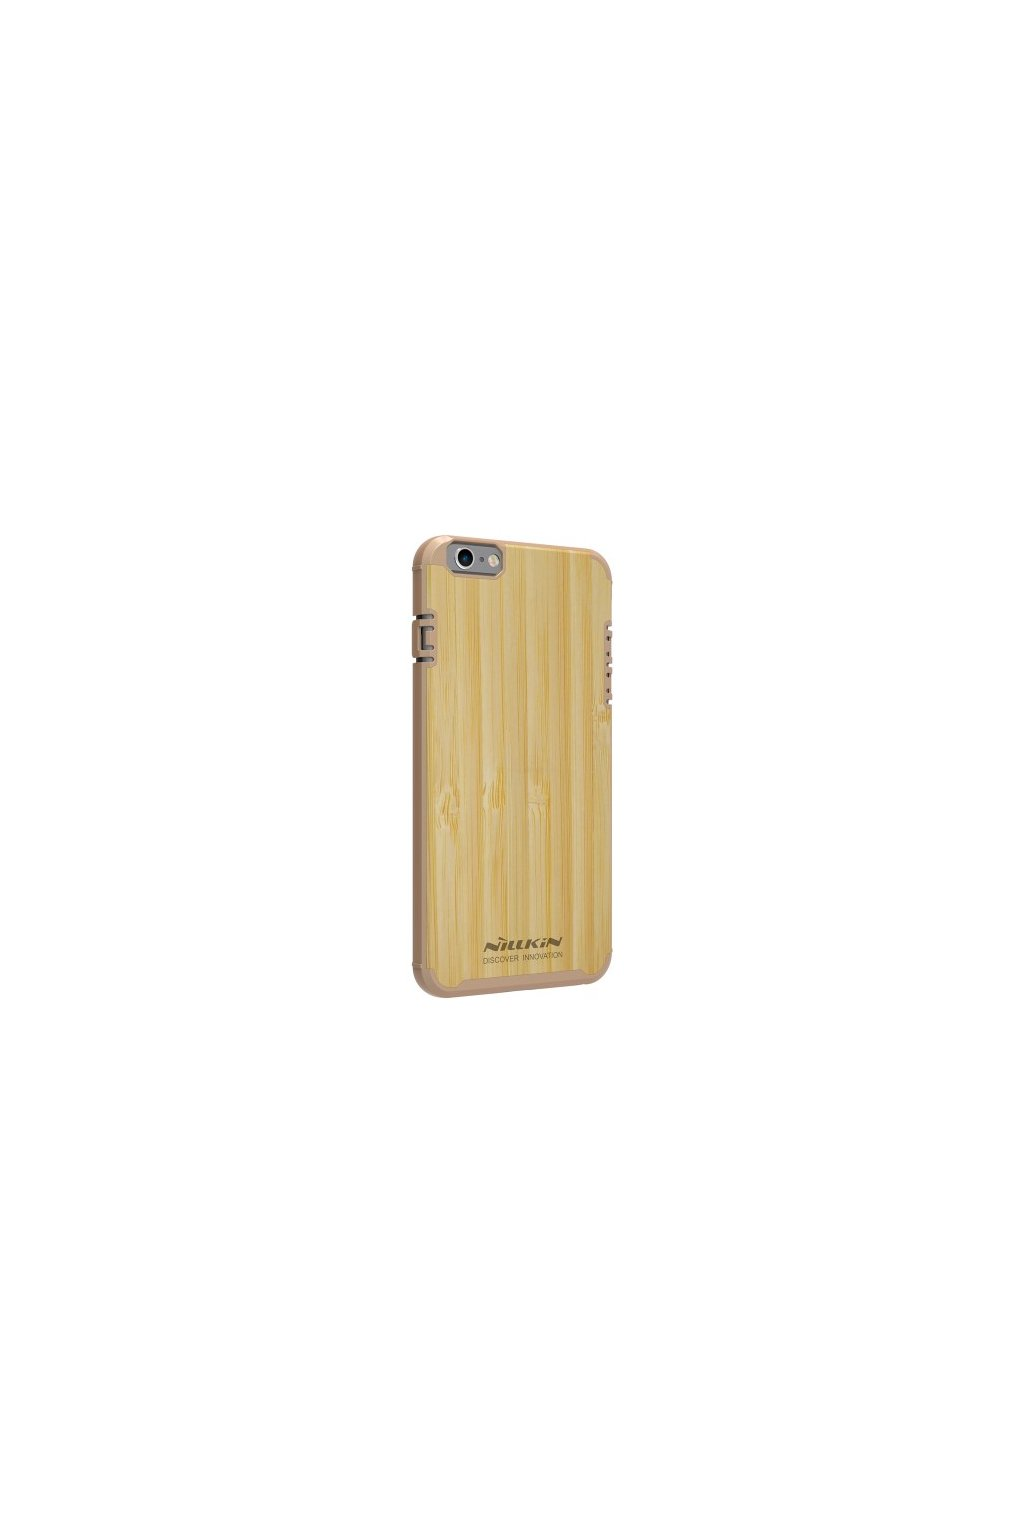 Pouzdro Nilllkin Bamboo Apple iPhone 6/6S, gold